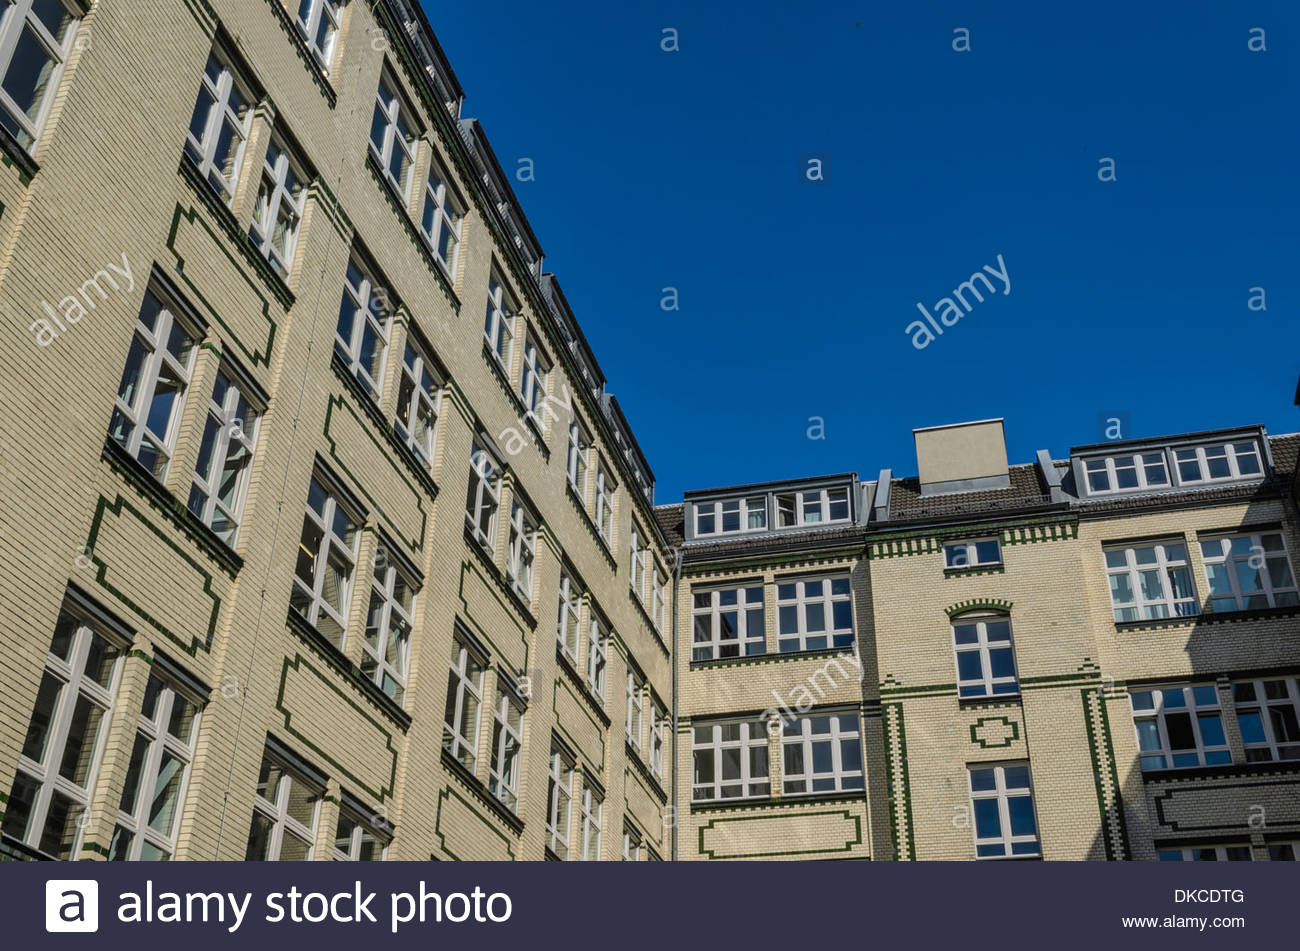 Historical office buildings, Berlin, Germany - Stock Image